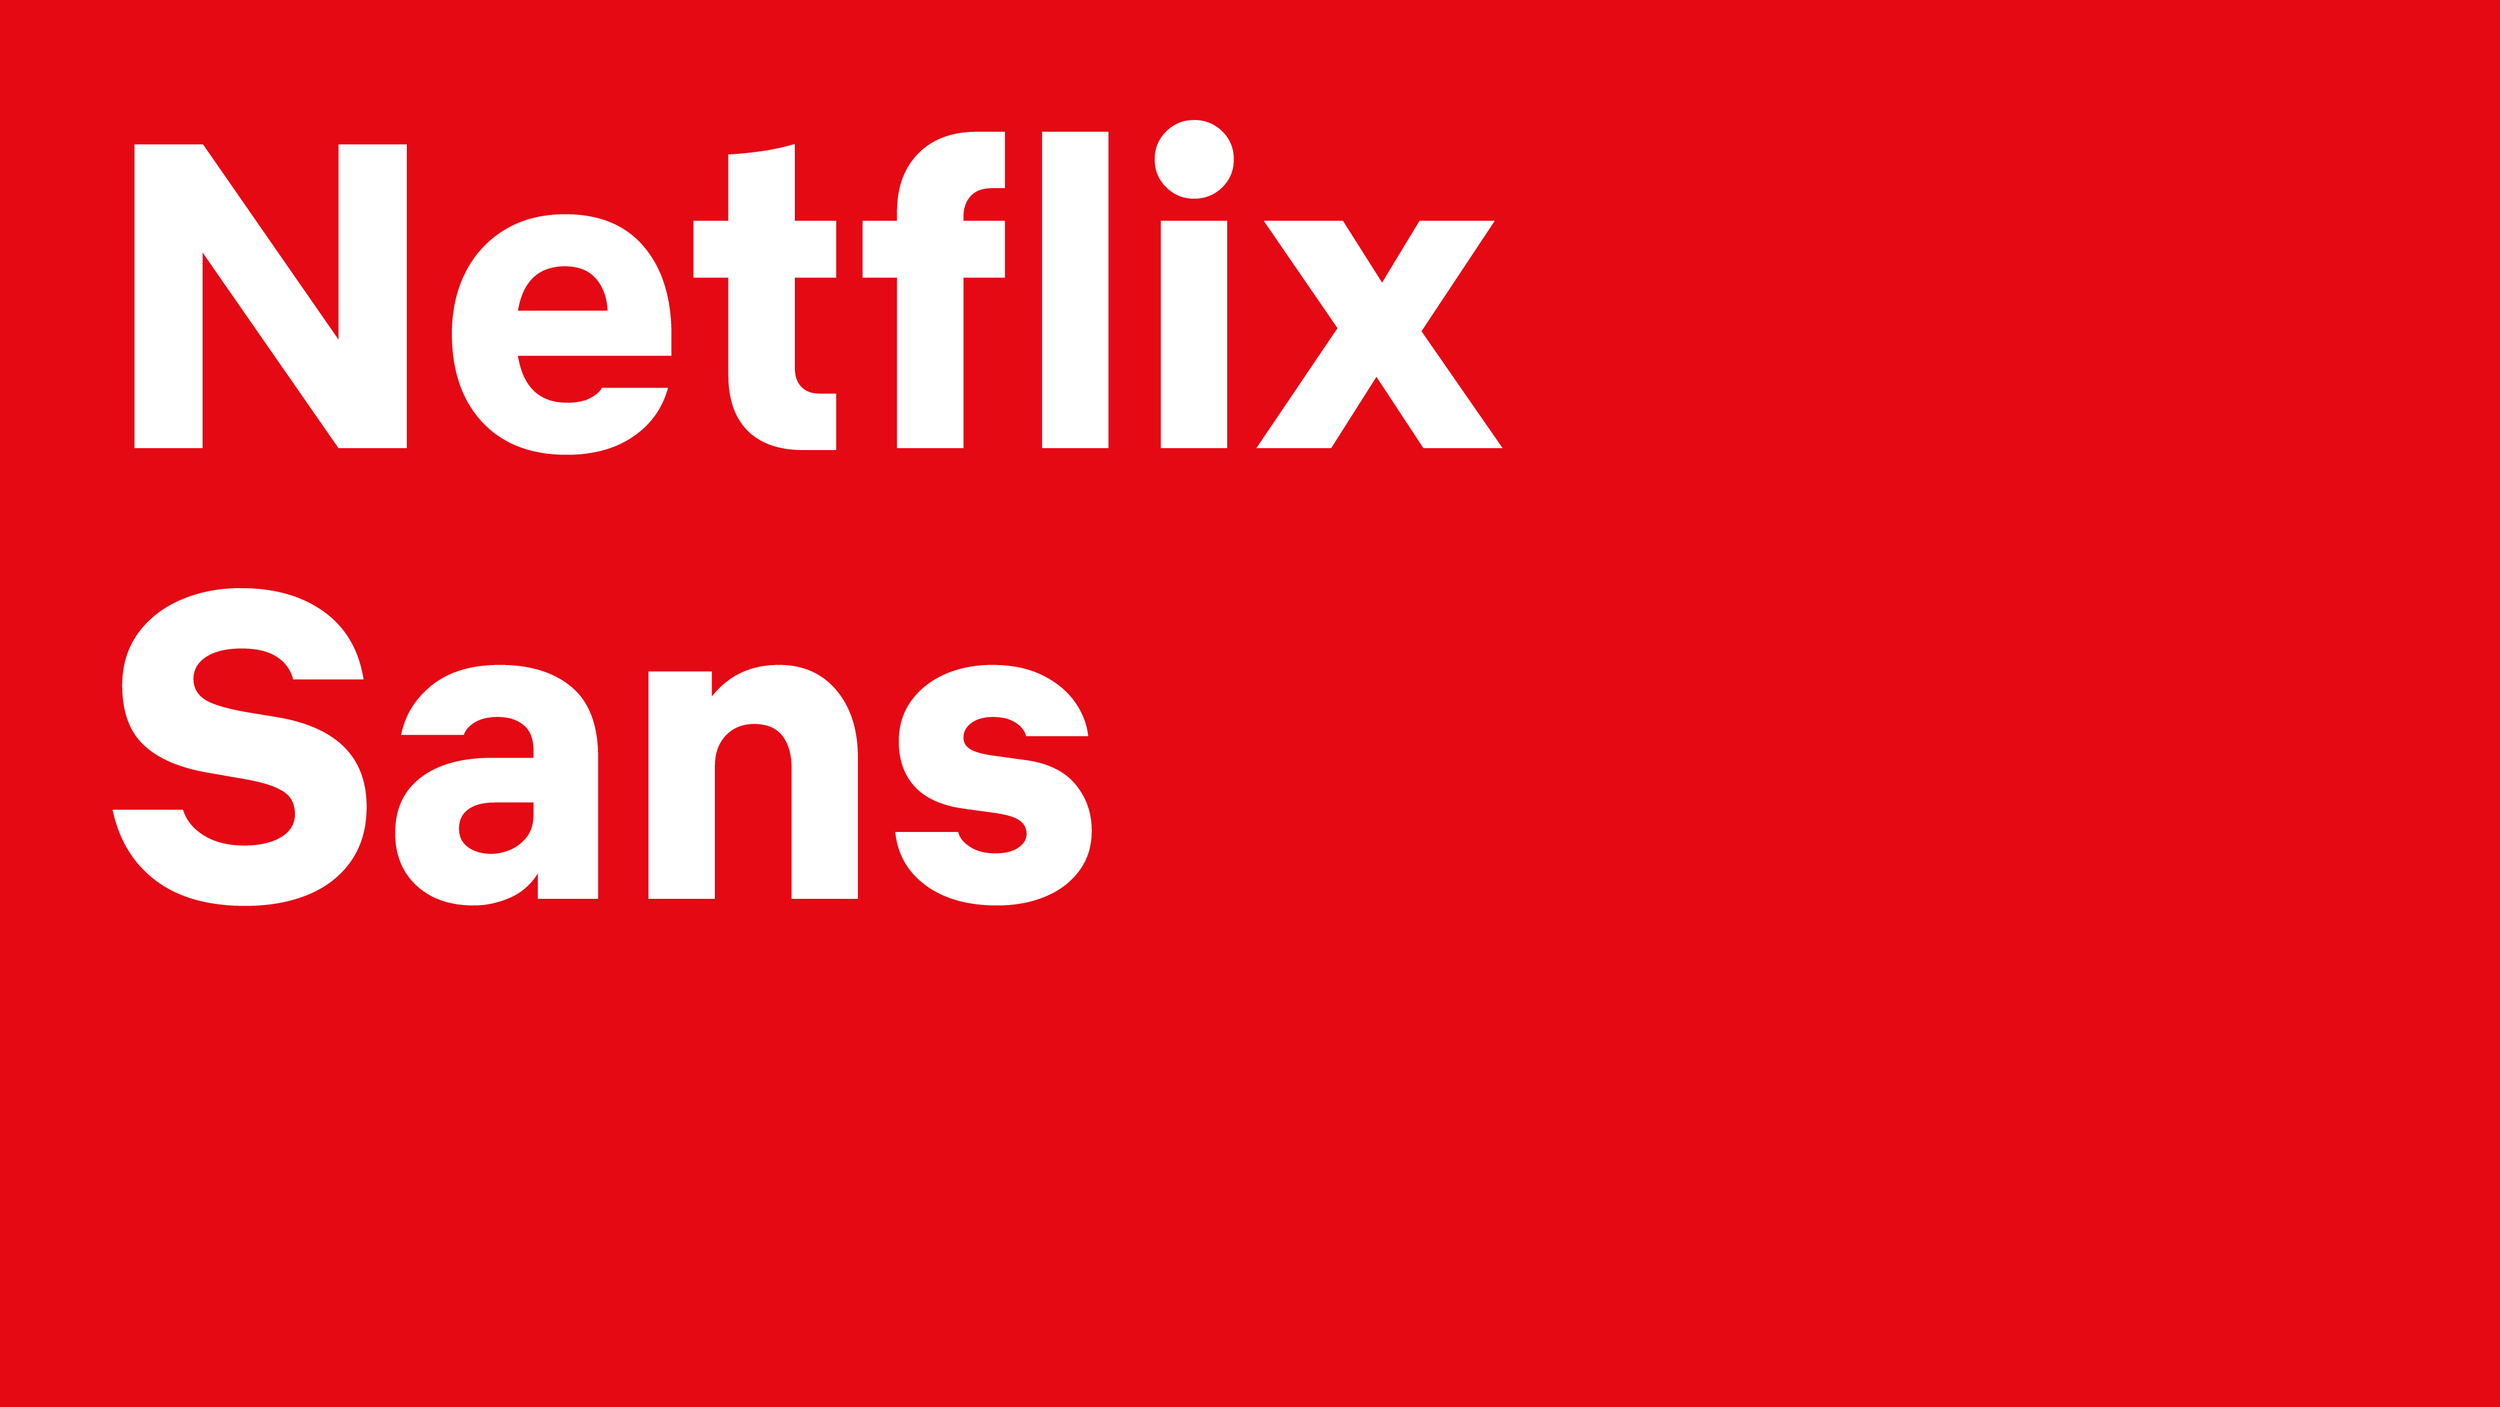 Netflix has its own custom font now just like Apple Samsung and